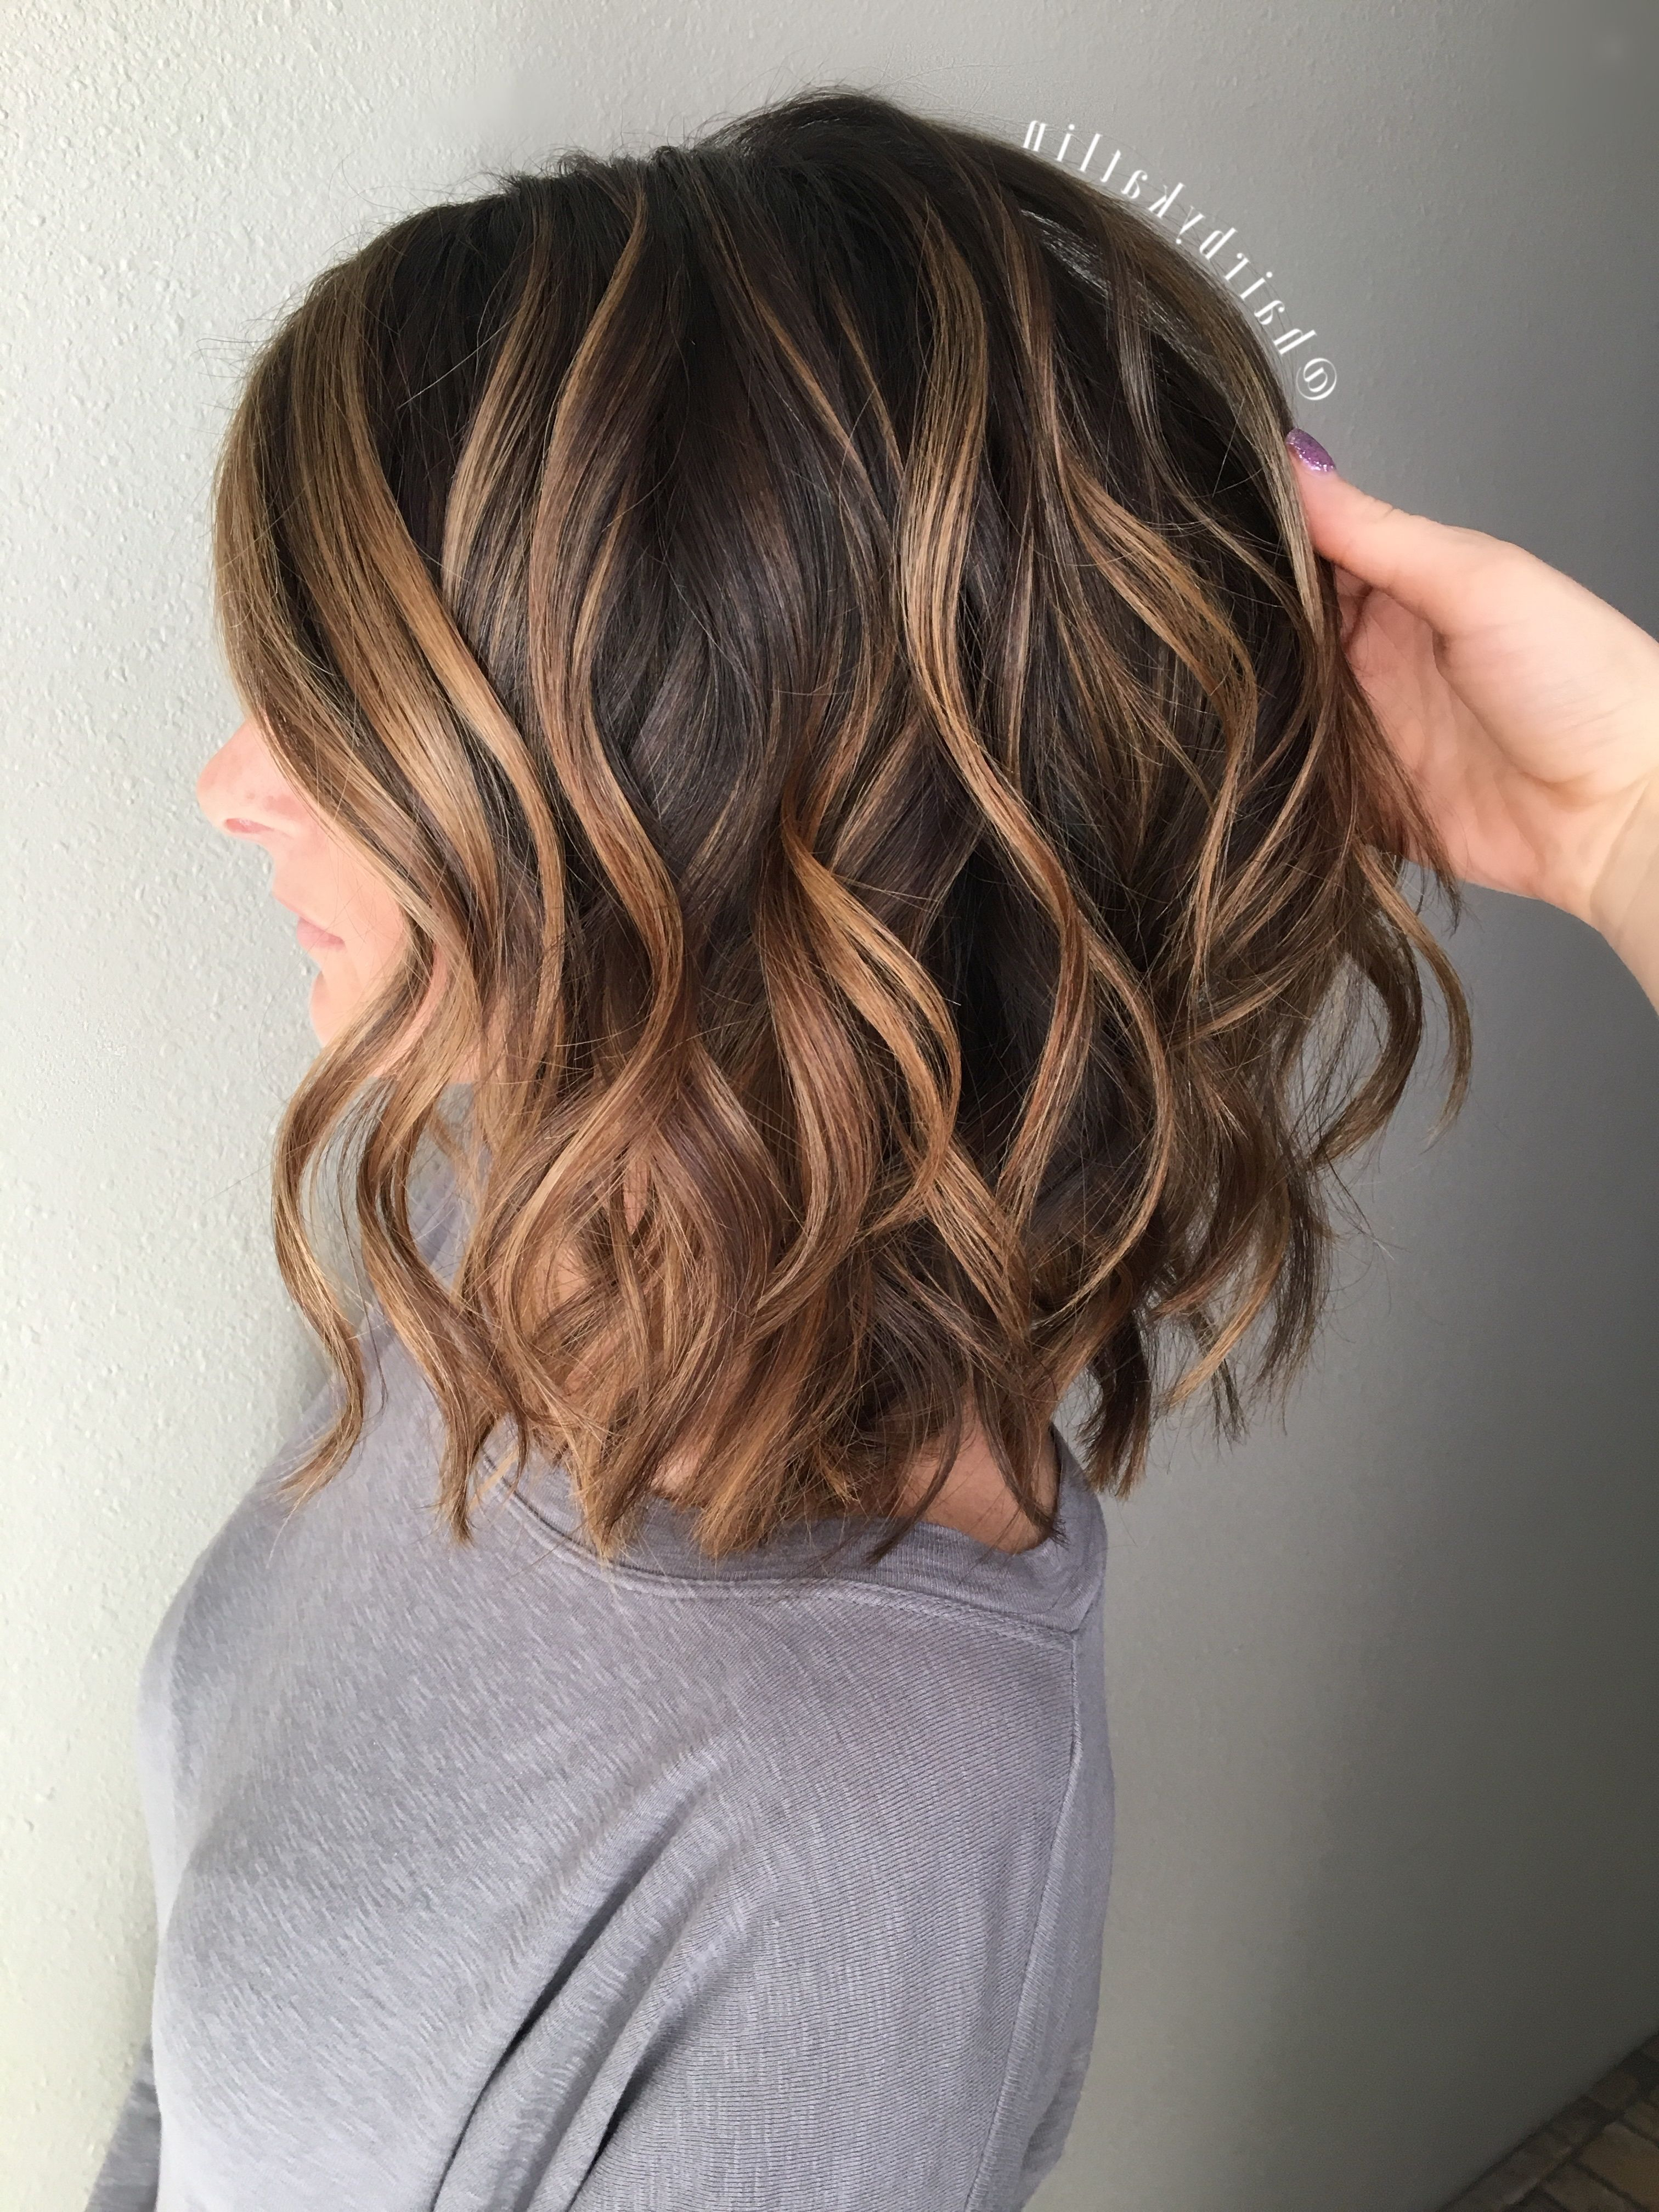 Natural Pertaining To Well Known Caramel Lob Hairstyles With Delicate Layers (View 17 of 20)